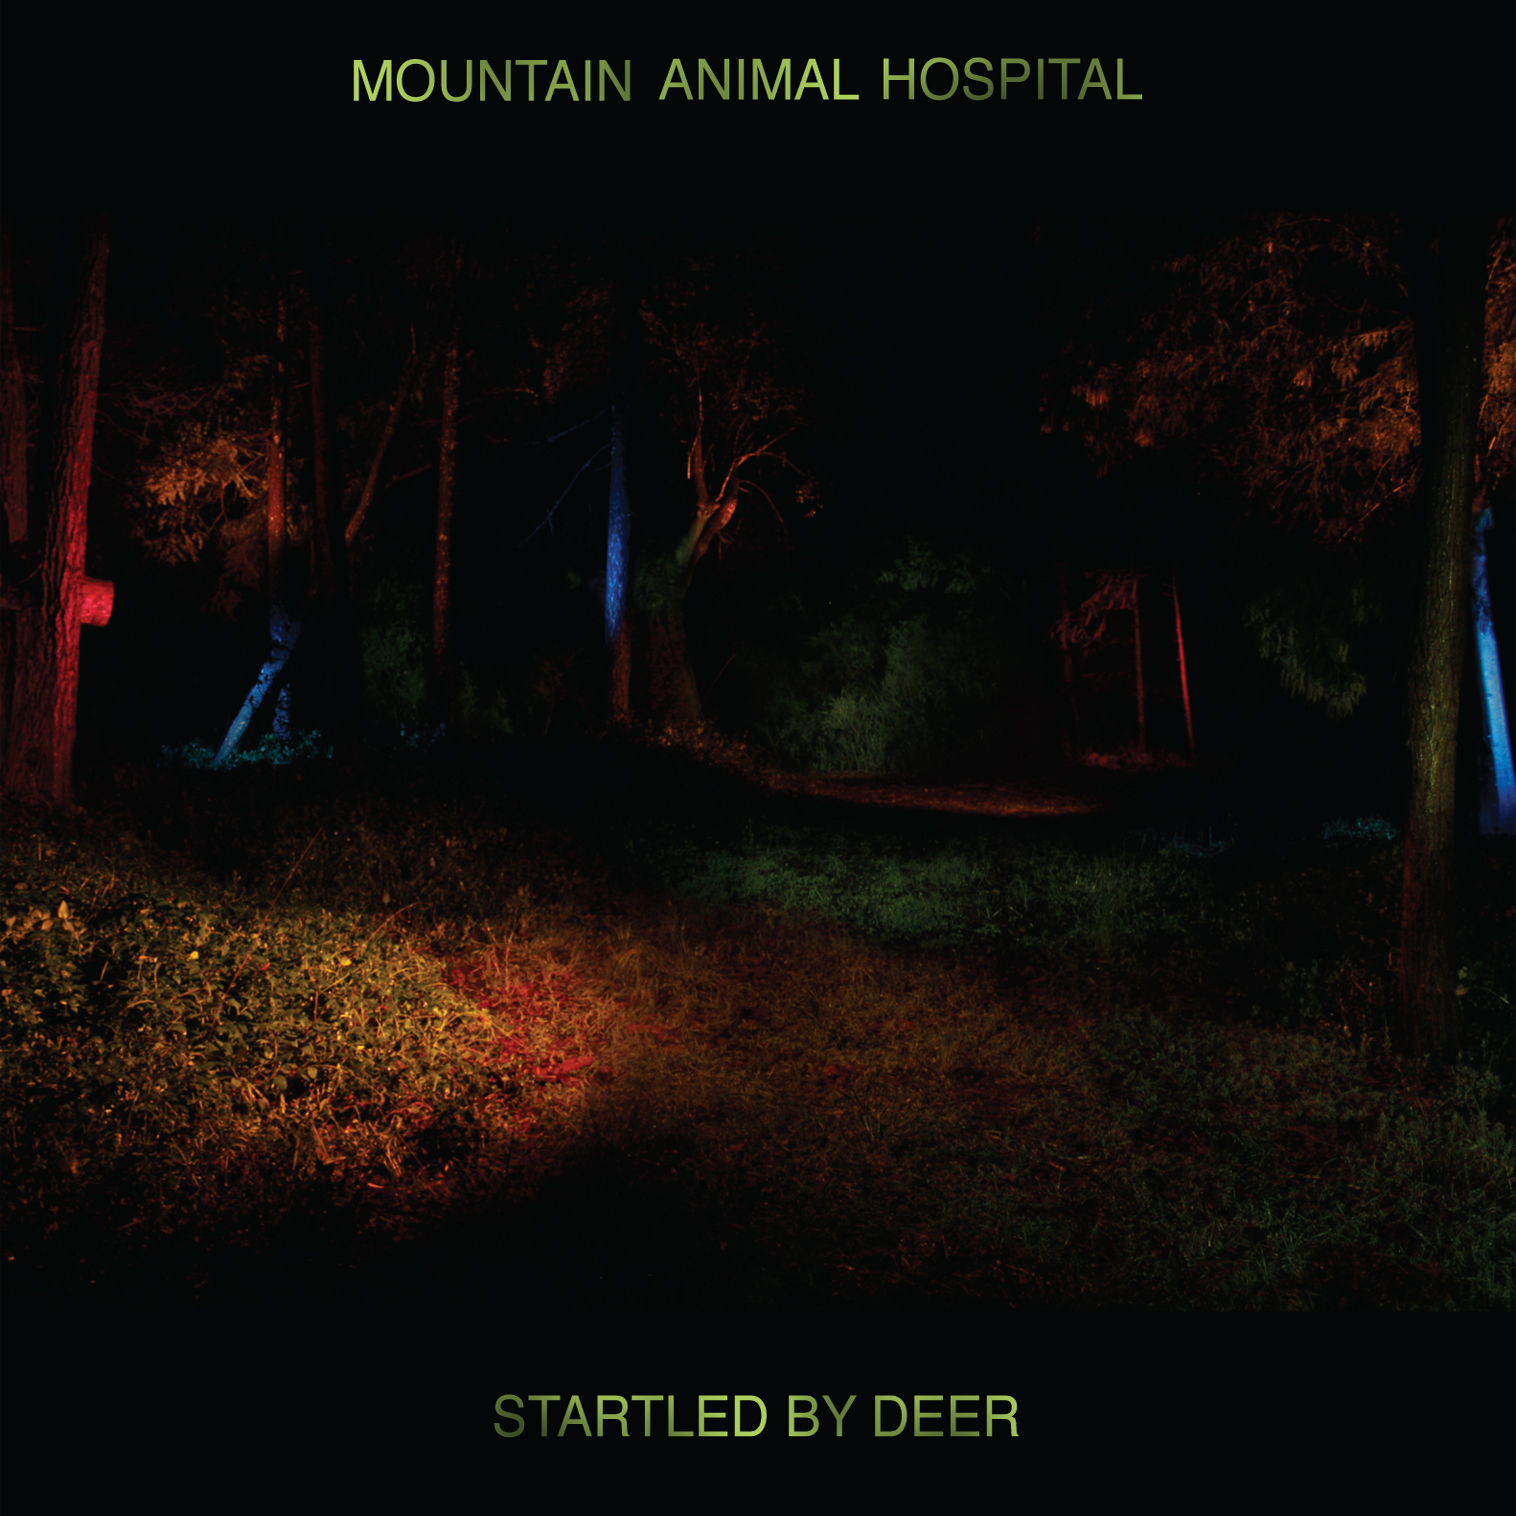 MOUNTAIN ANIMAL HOSPITAL